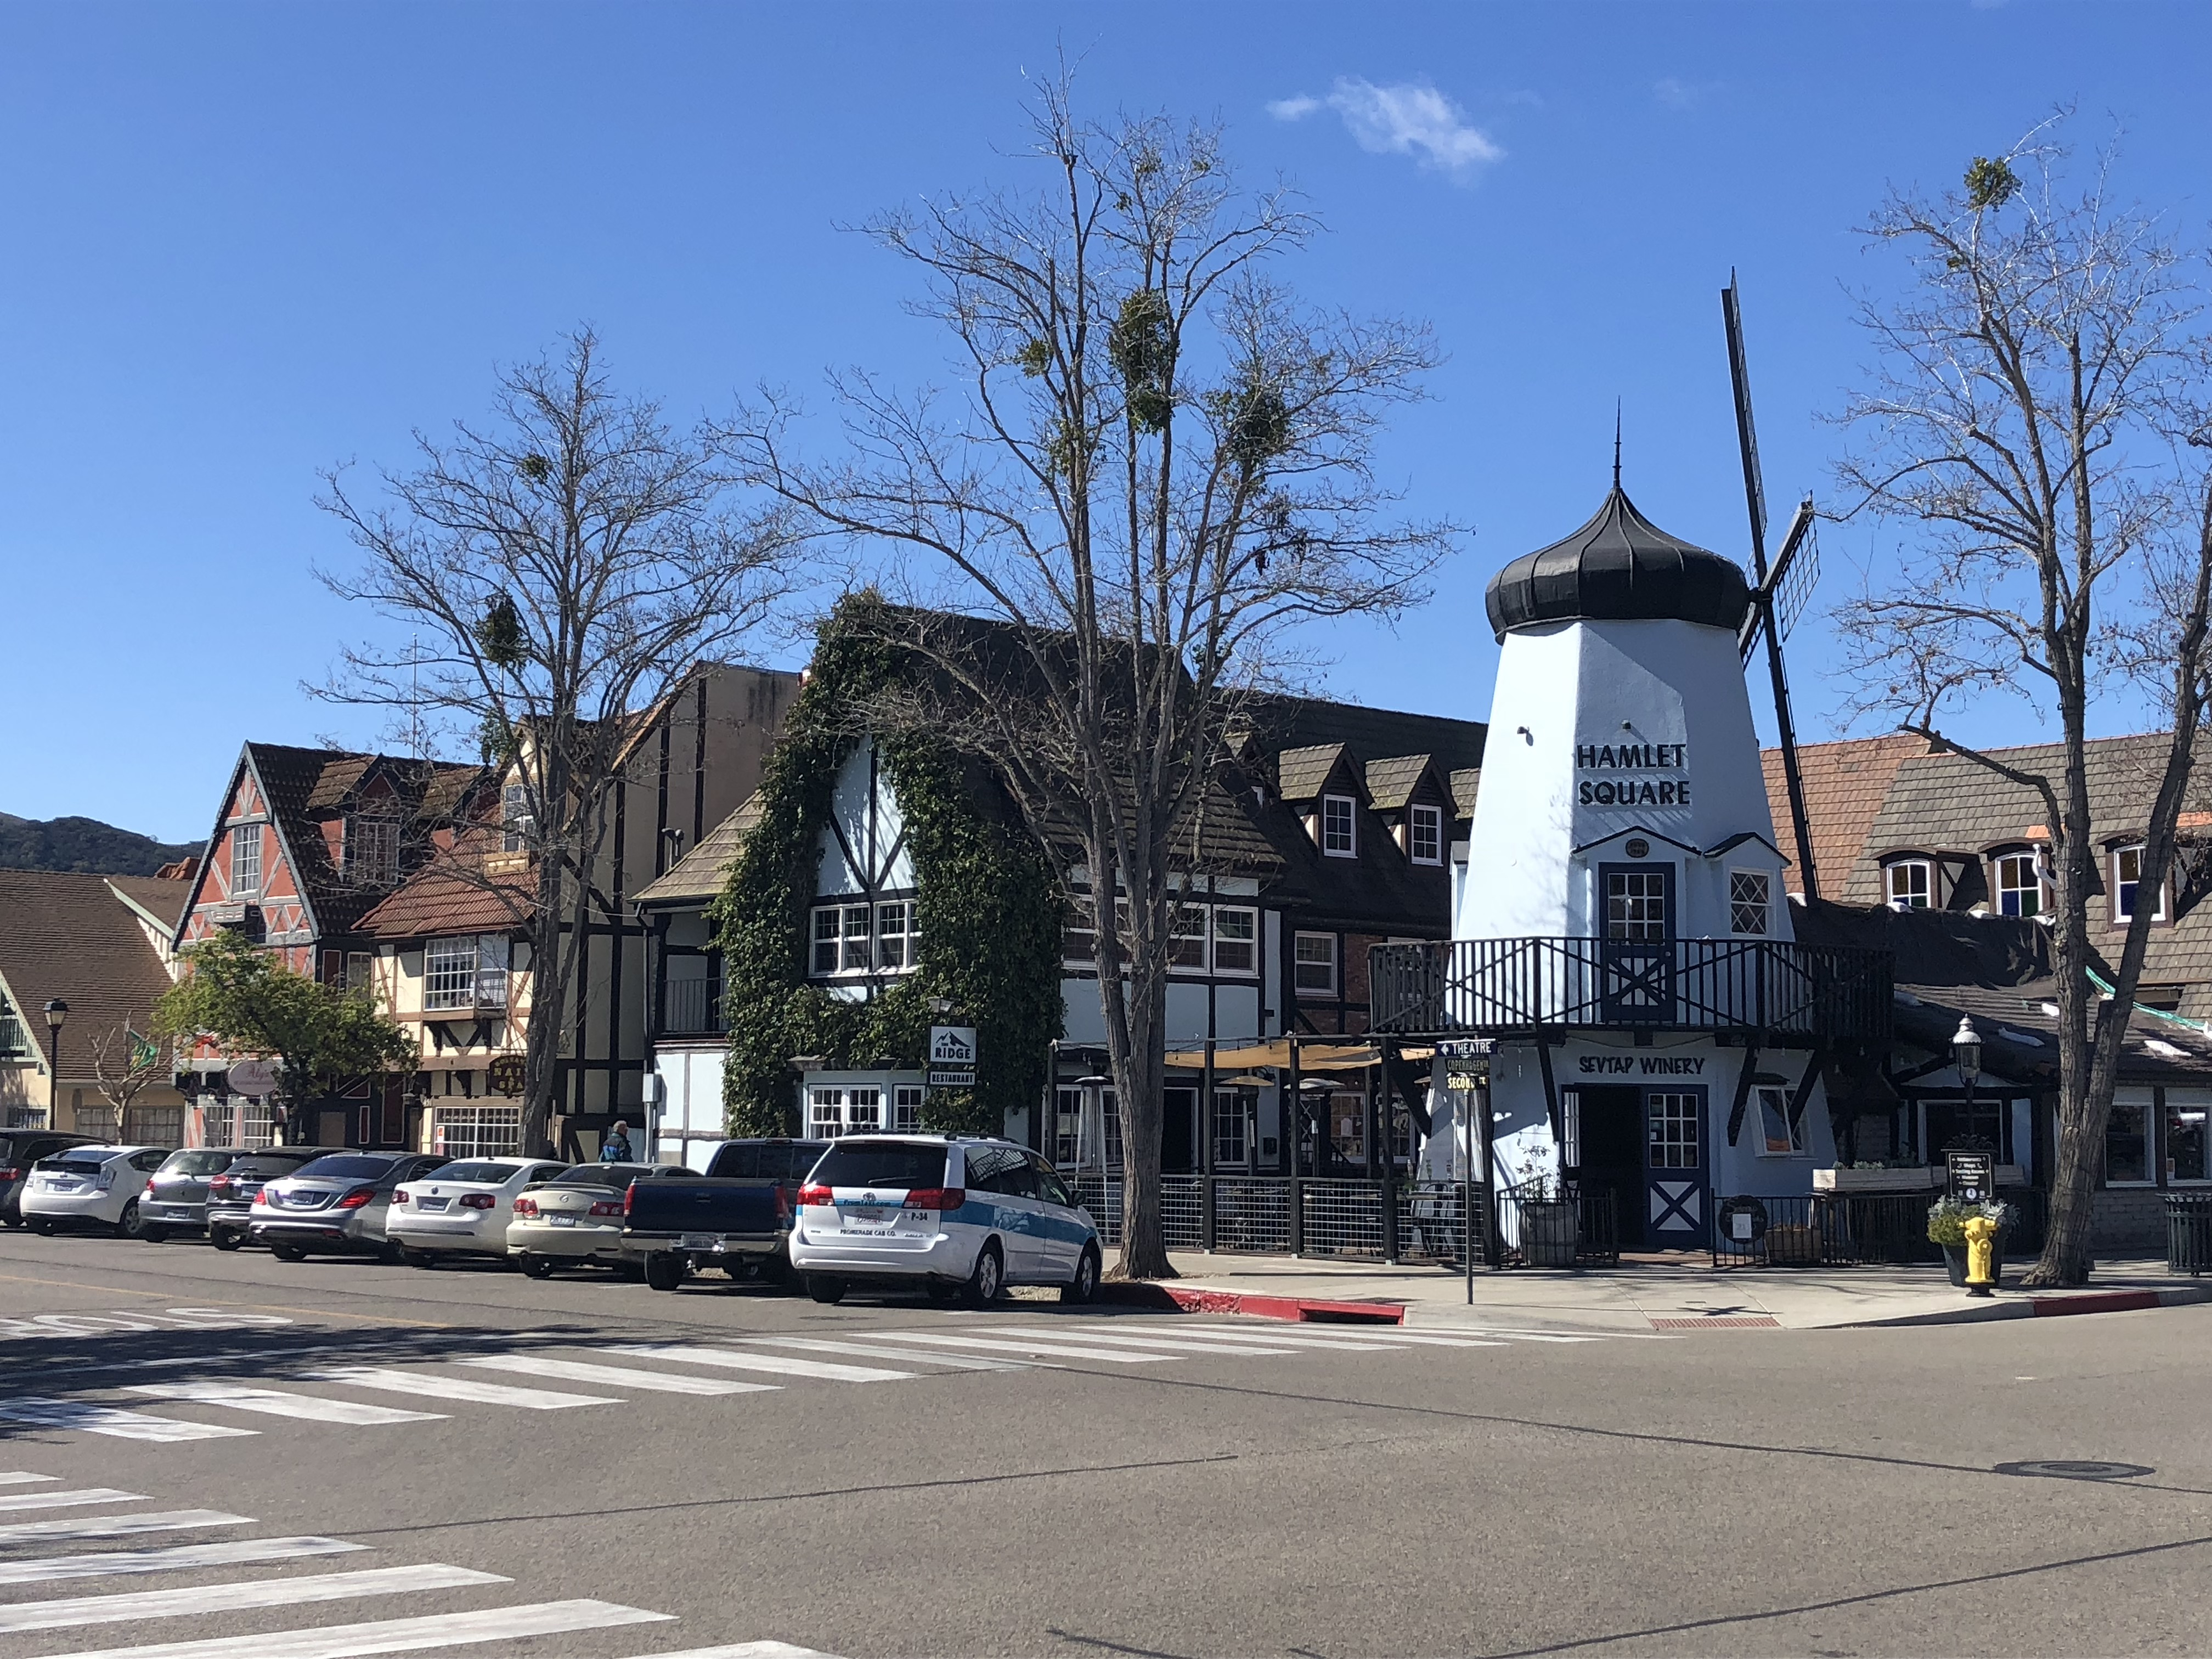 Buildings in Solvang